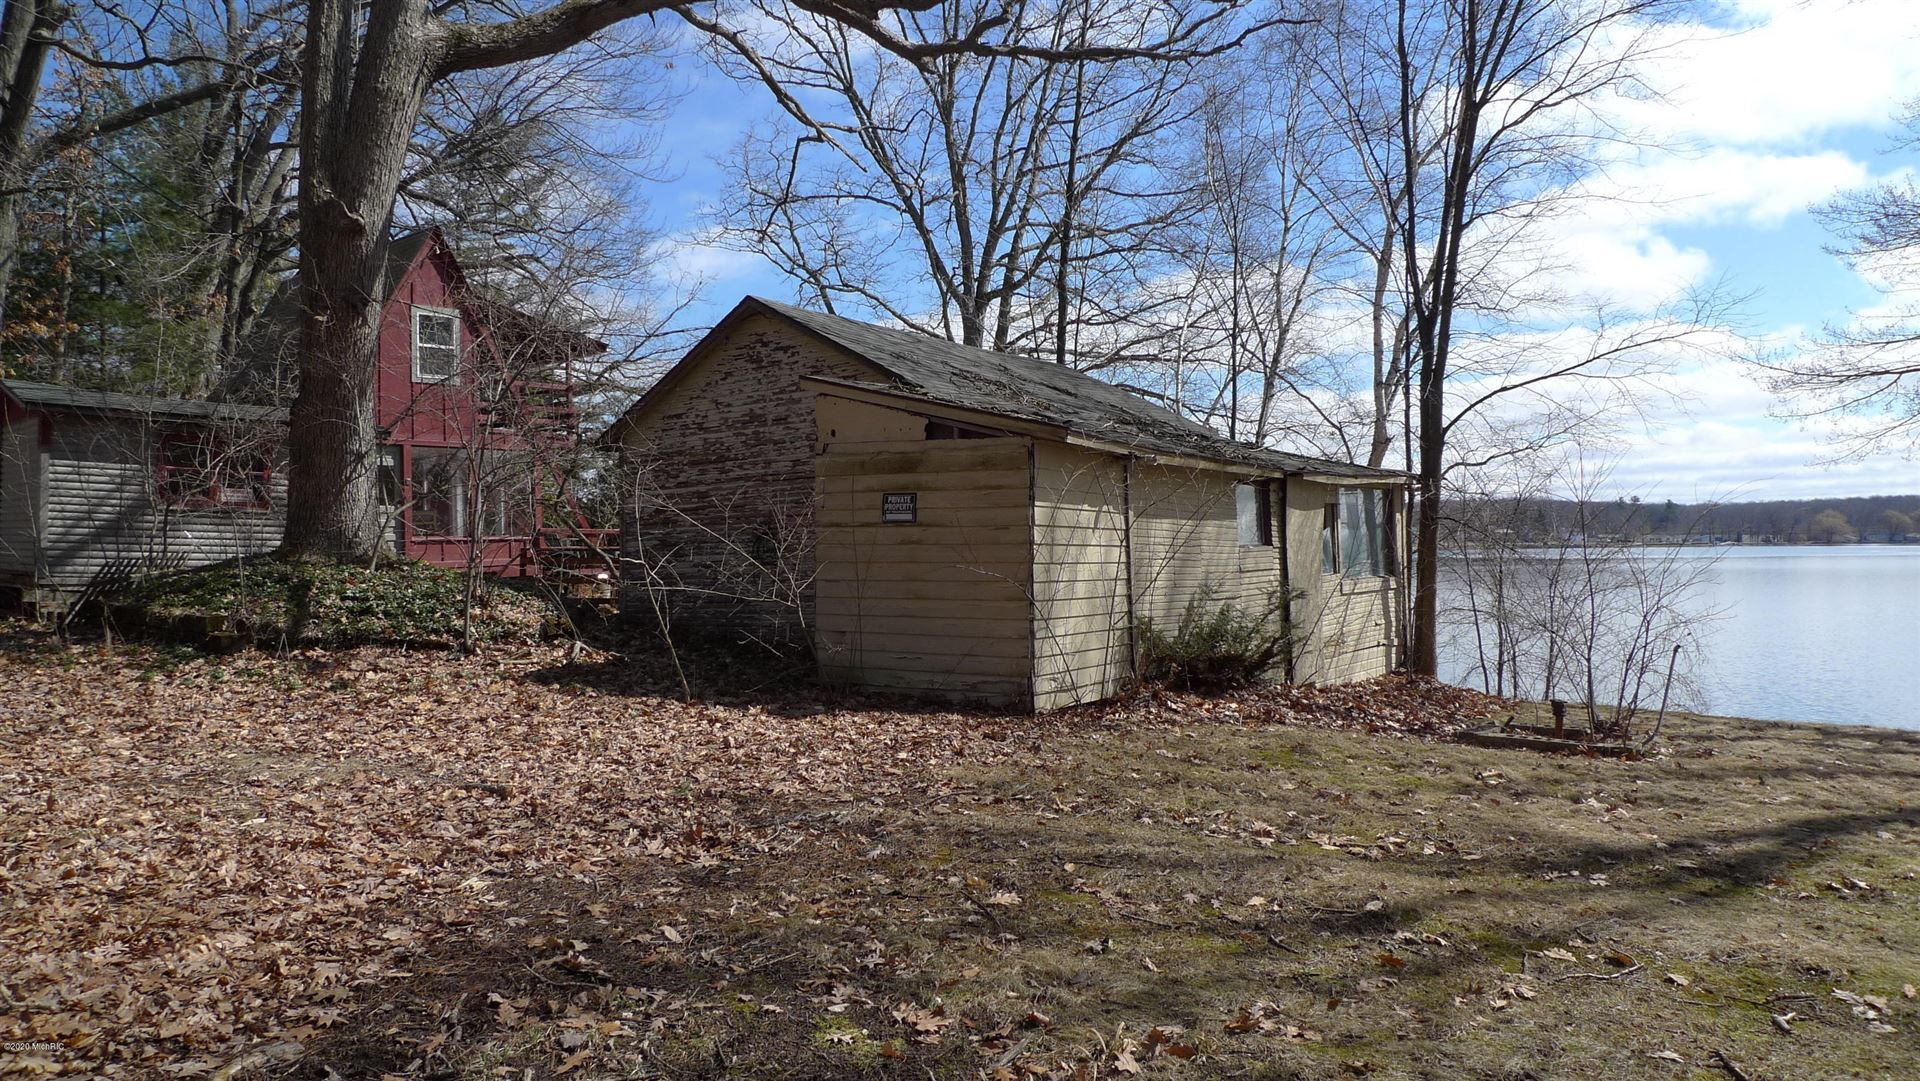 16611 Lake Shore Drive NE, Gowen, MI 49326 - MLS#: 20011093